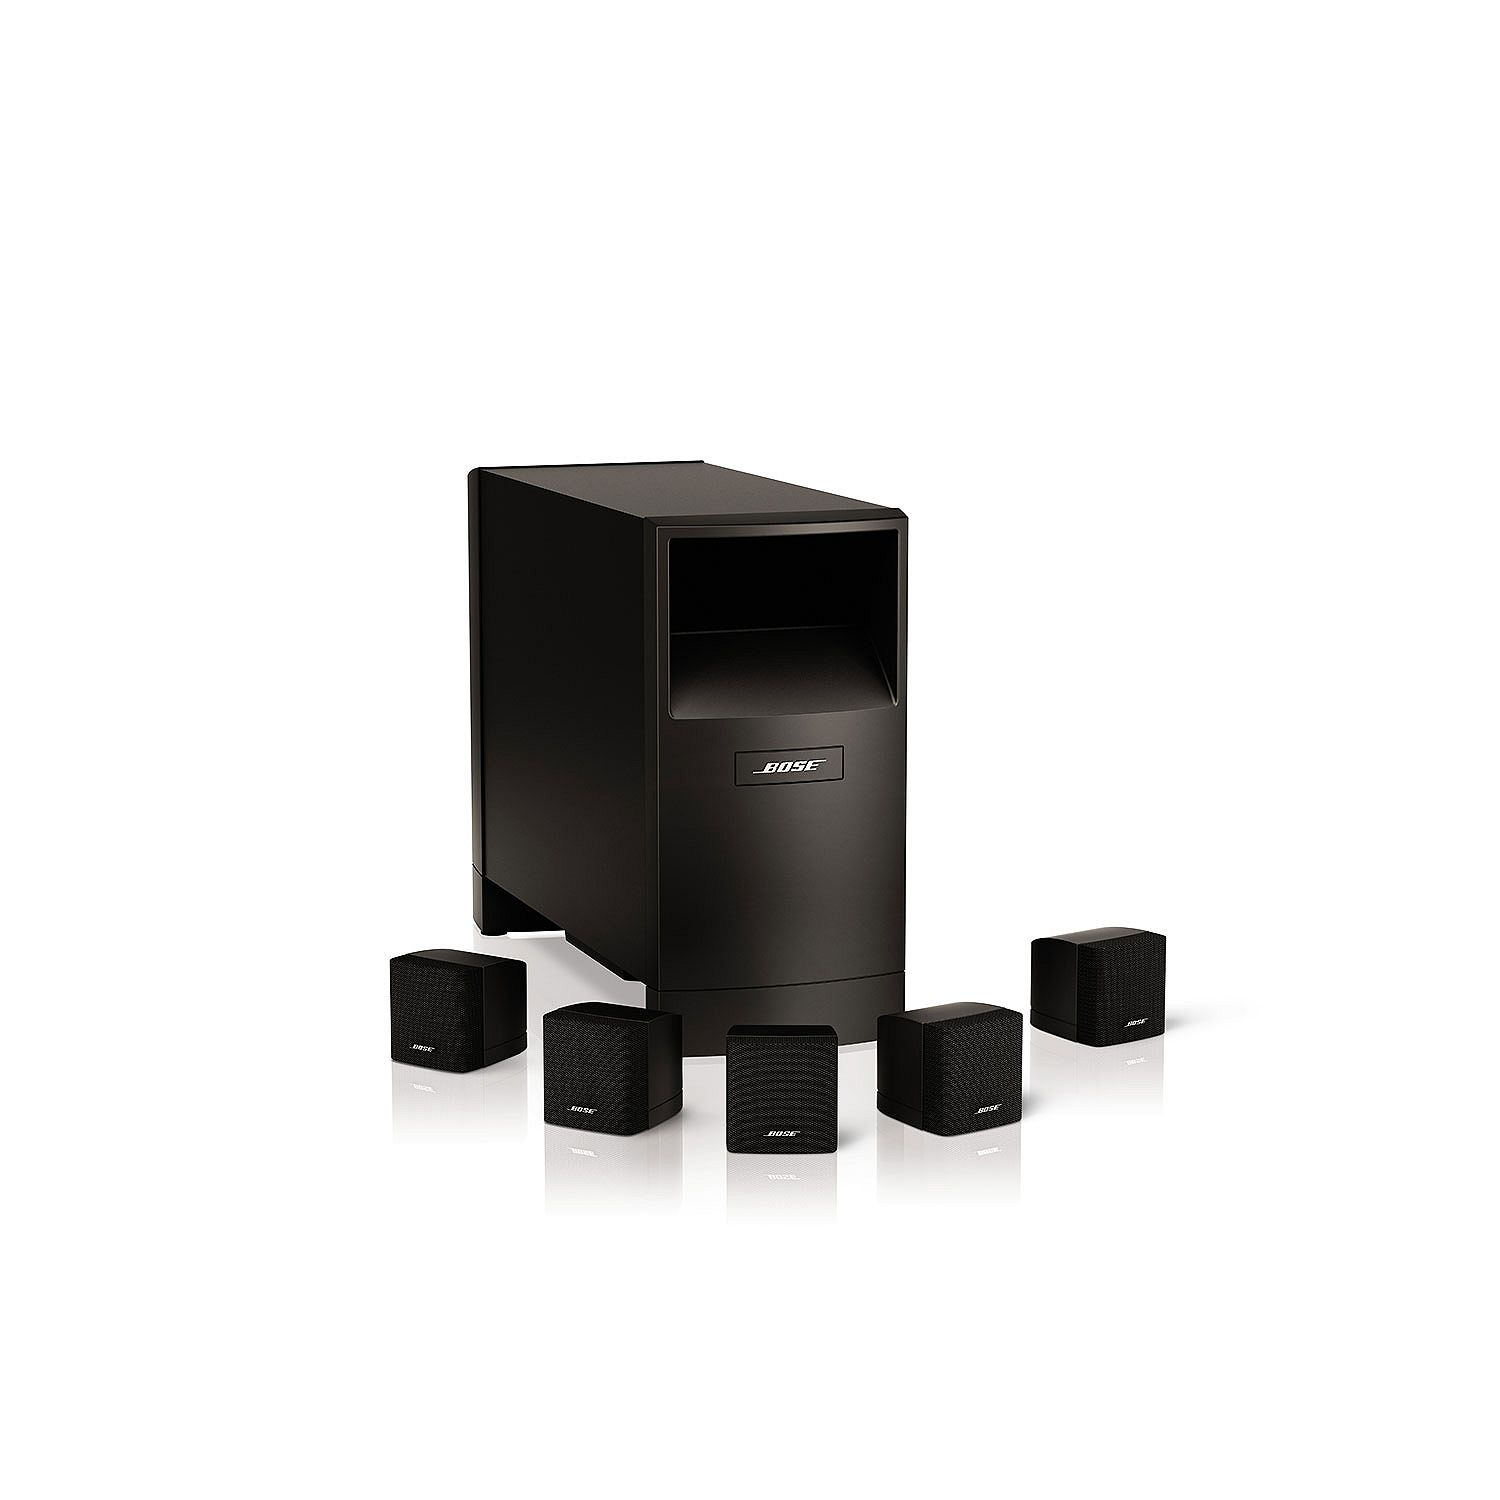 Bose Acoustimass 6 Series III Home Entertainment Speaker ...